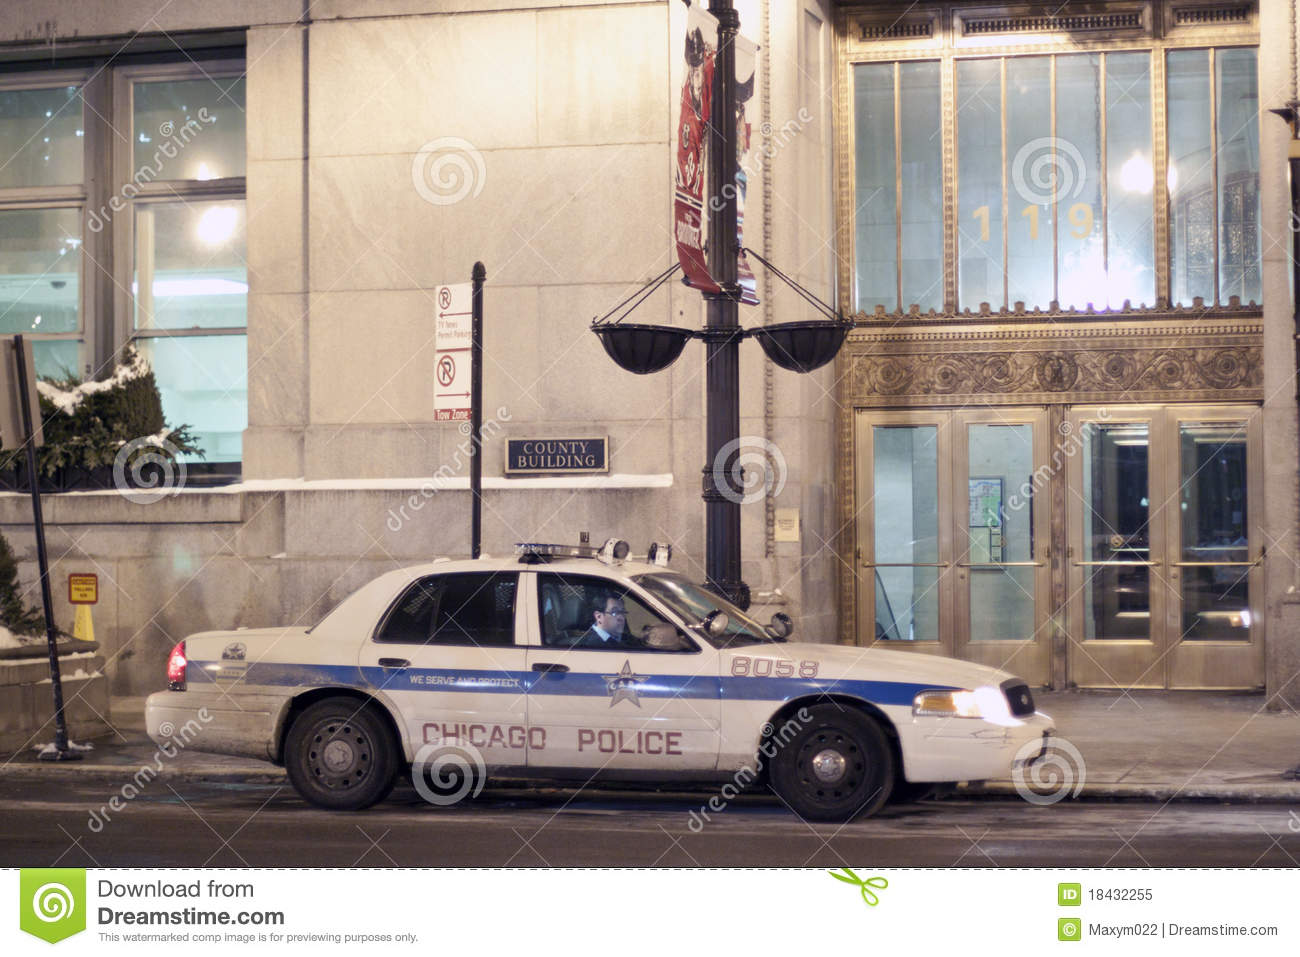 Chicago Police Car in Downtown Chicago at Night